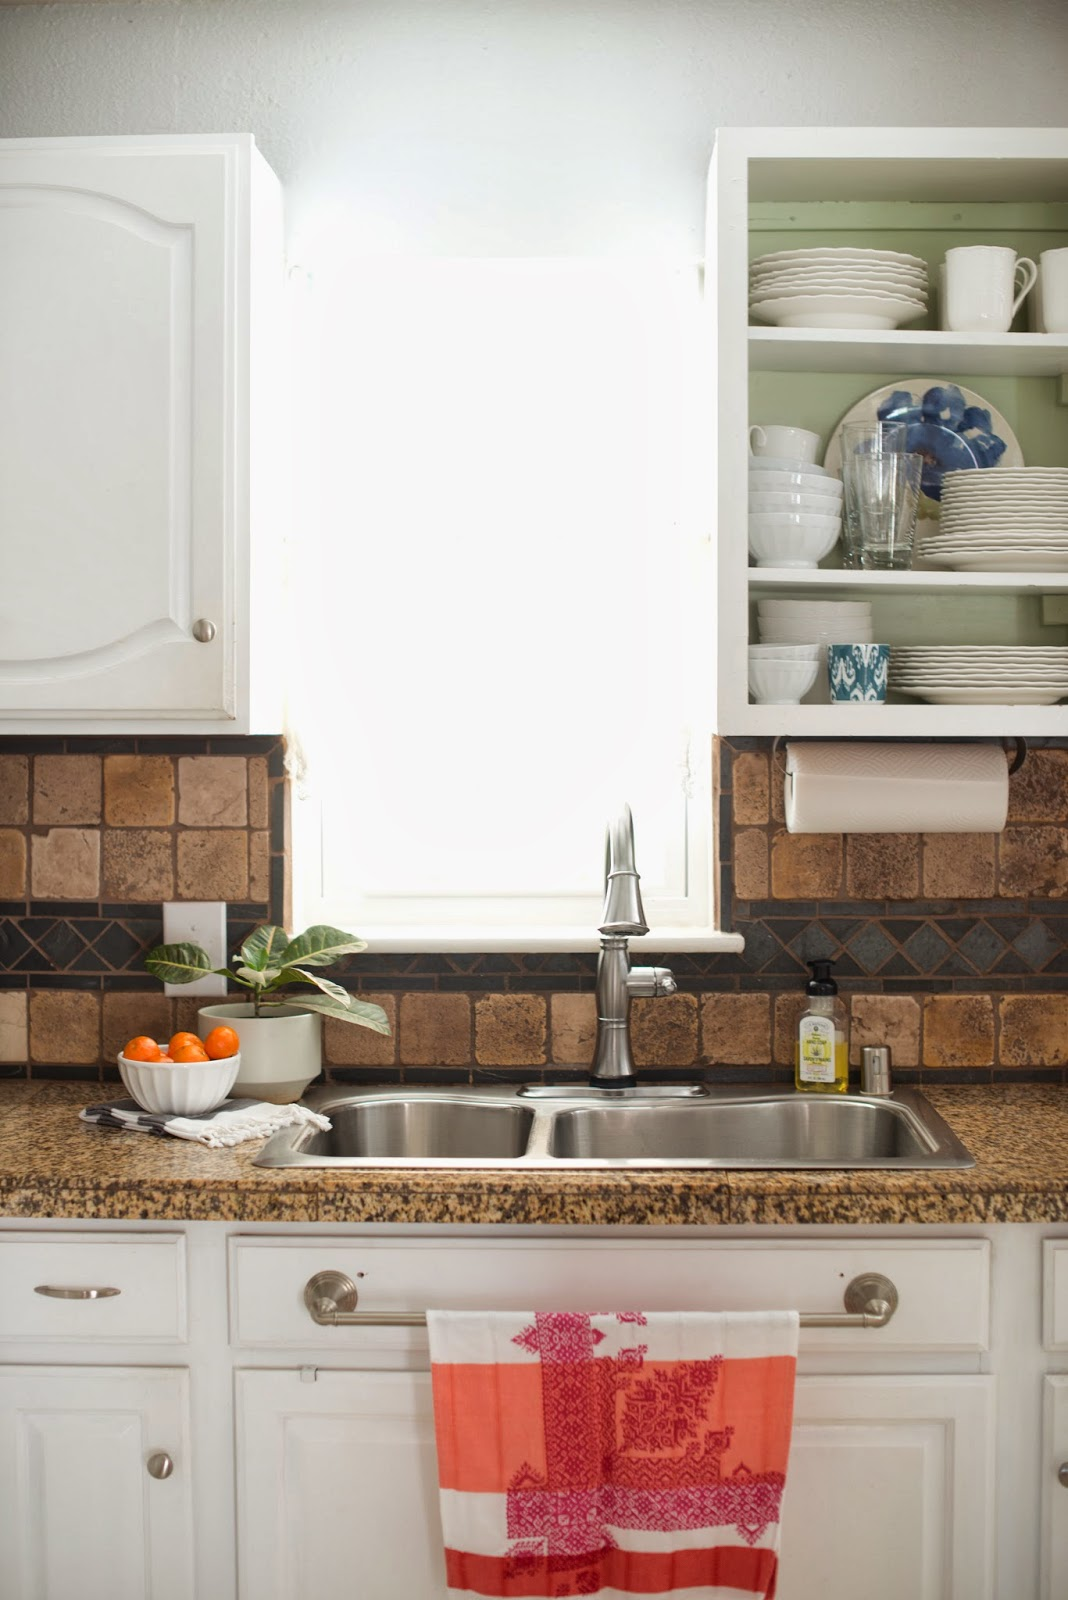 Domestic Fashionista: The Kitchen Sink: Styling + Cleaning Routine